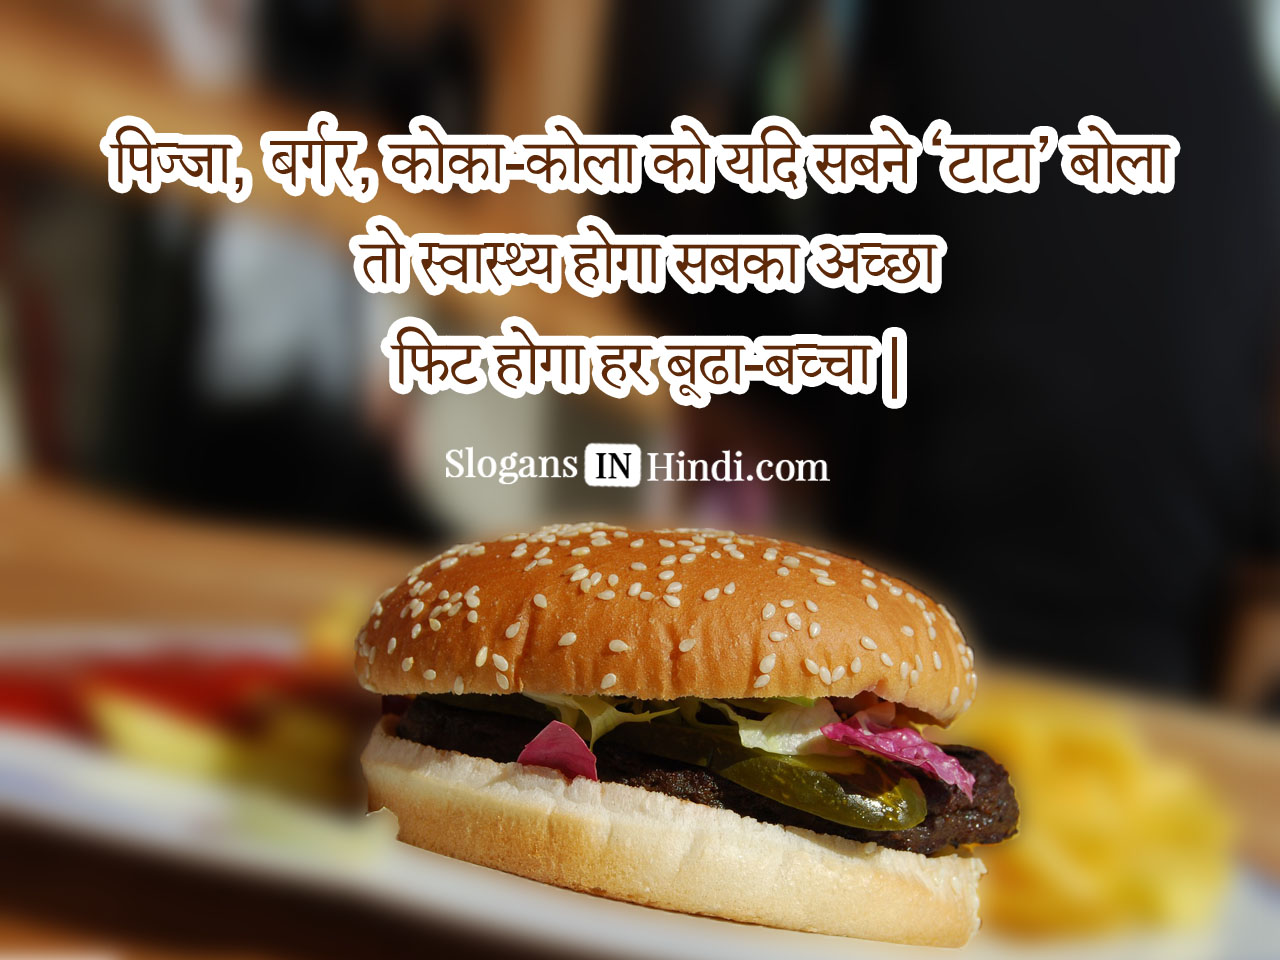 Junk food essay in marathi